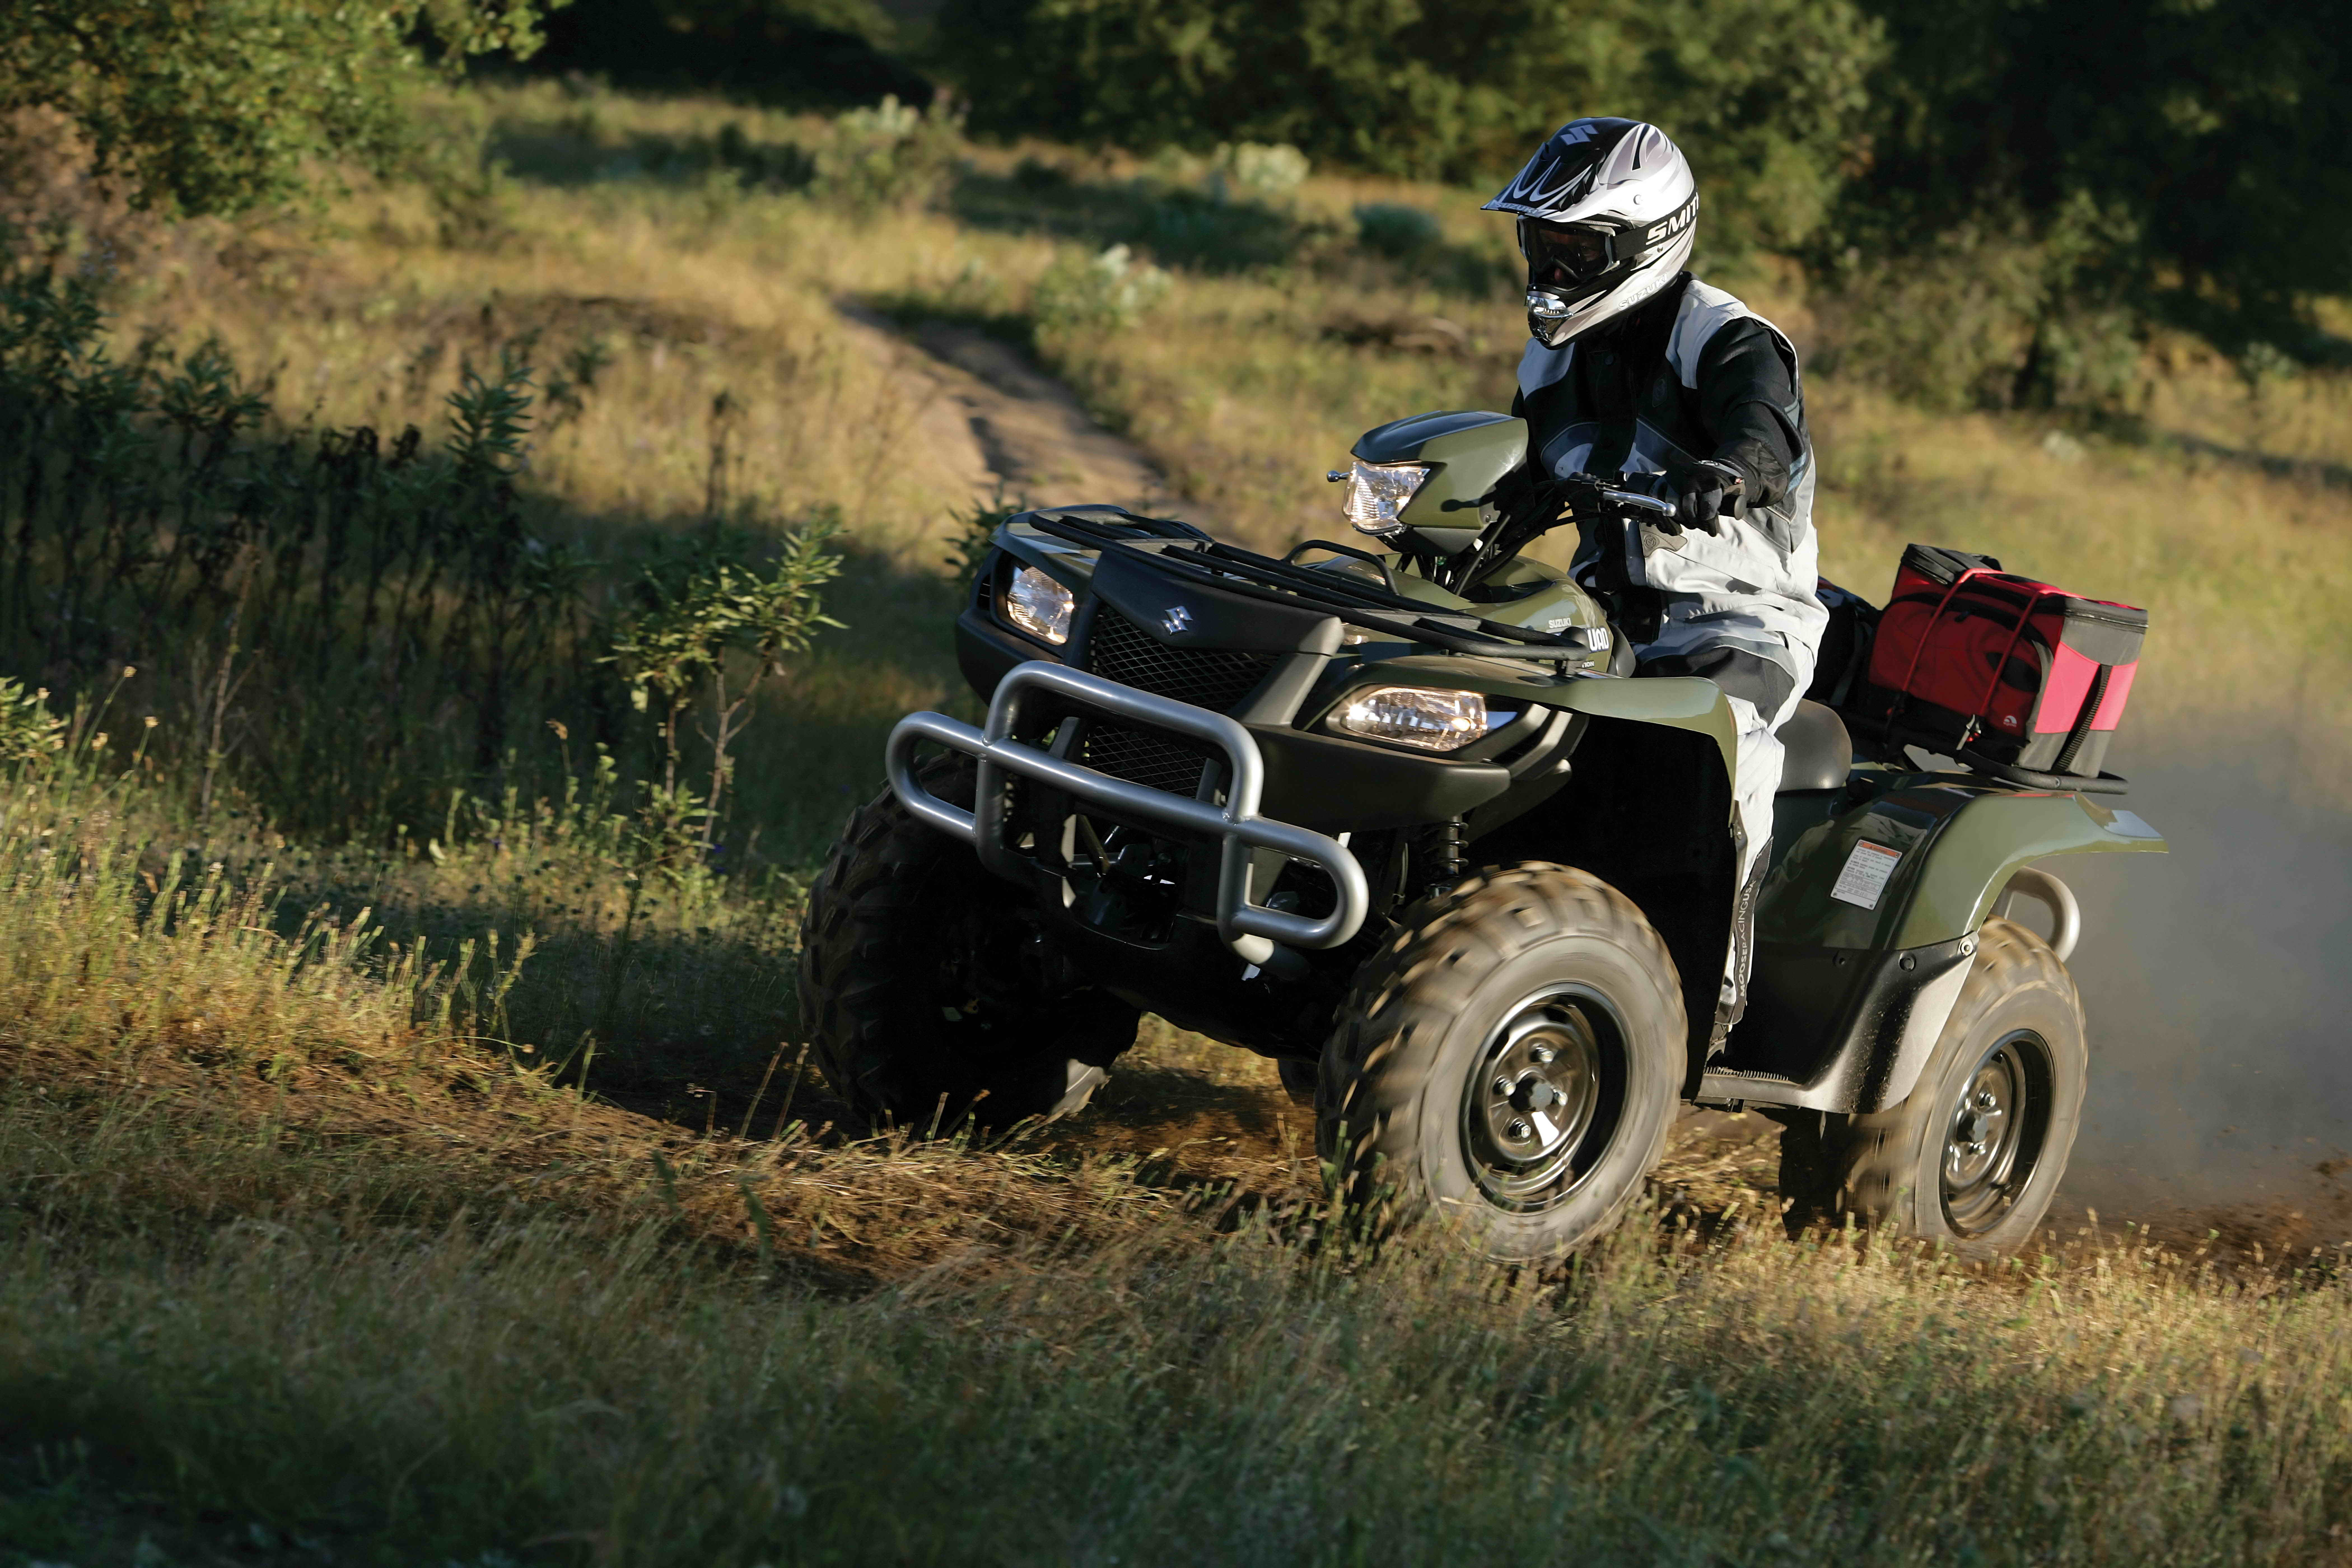 2007 Suzuki KingQuad 700 4x4 | Top Speed